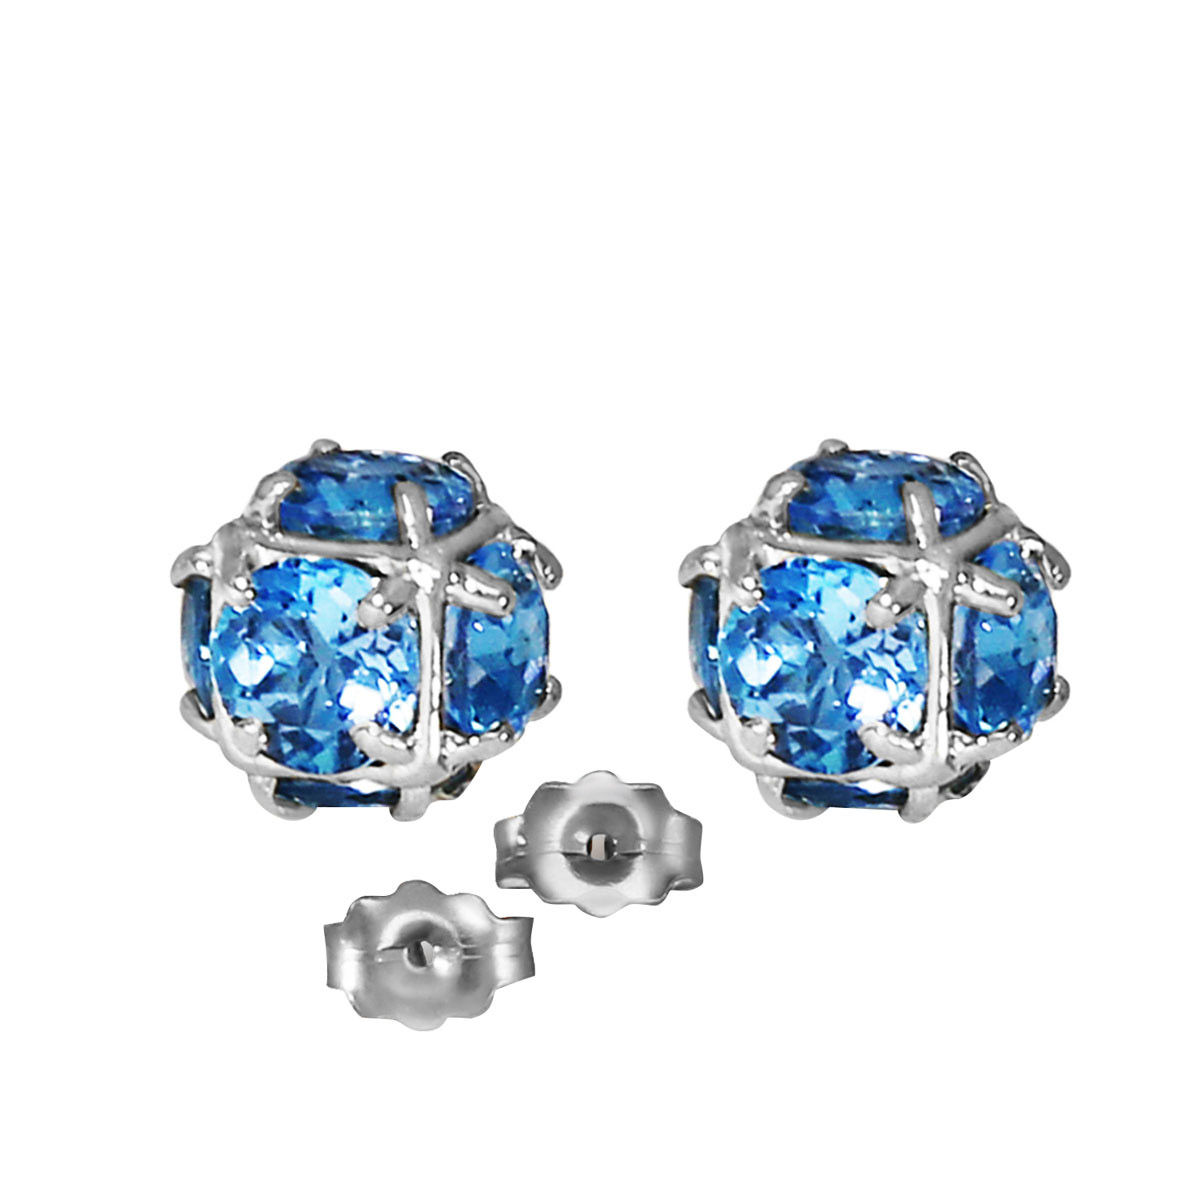 nl gifts rose ice riveting topaz with round her gold studs blue halo for jewelry set diamond in rg stud white earrings pave